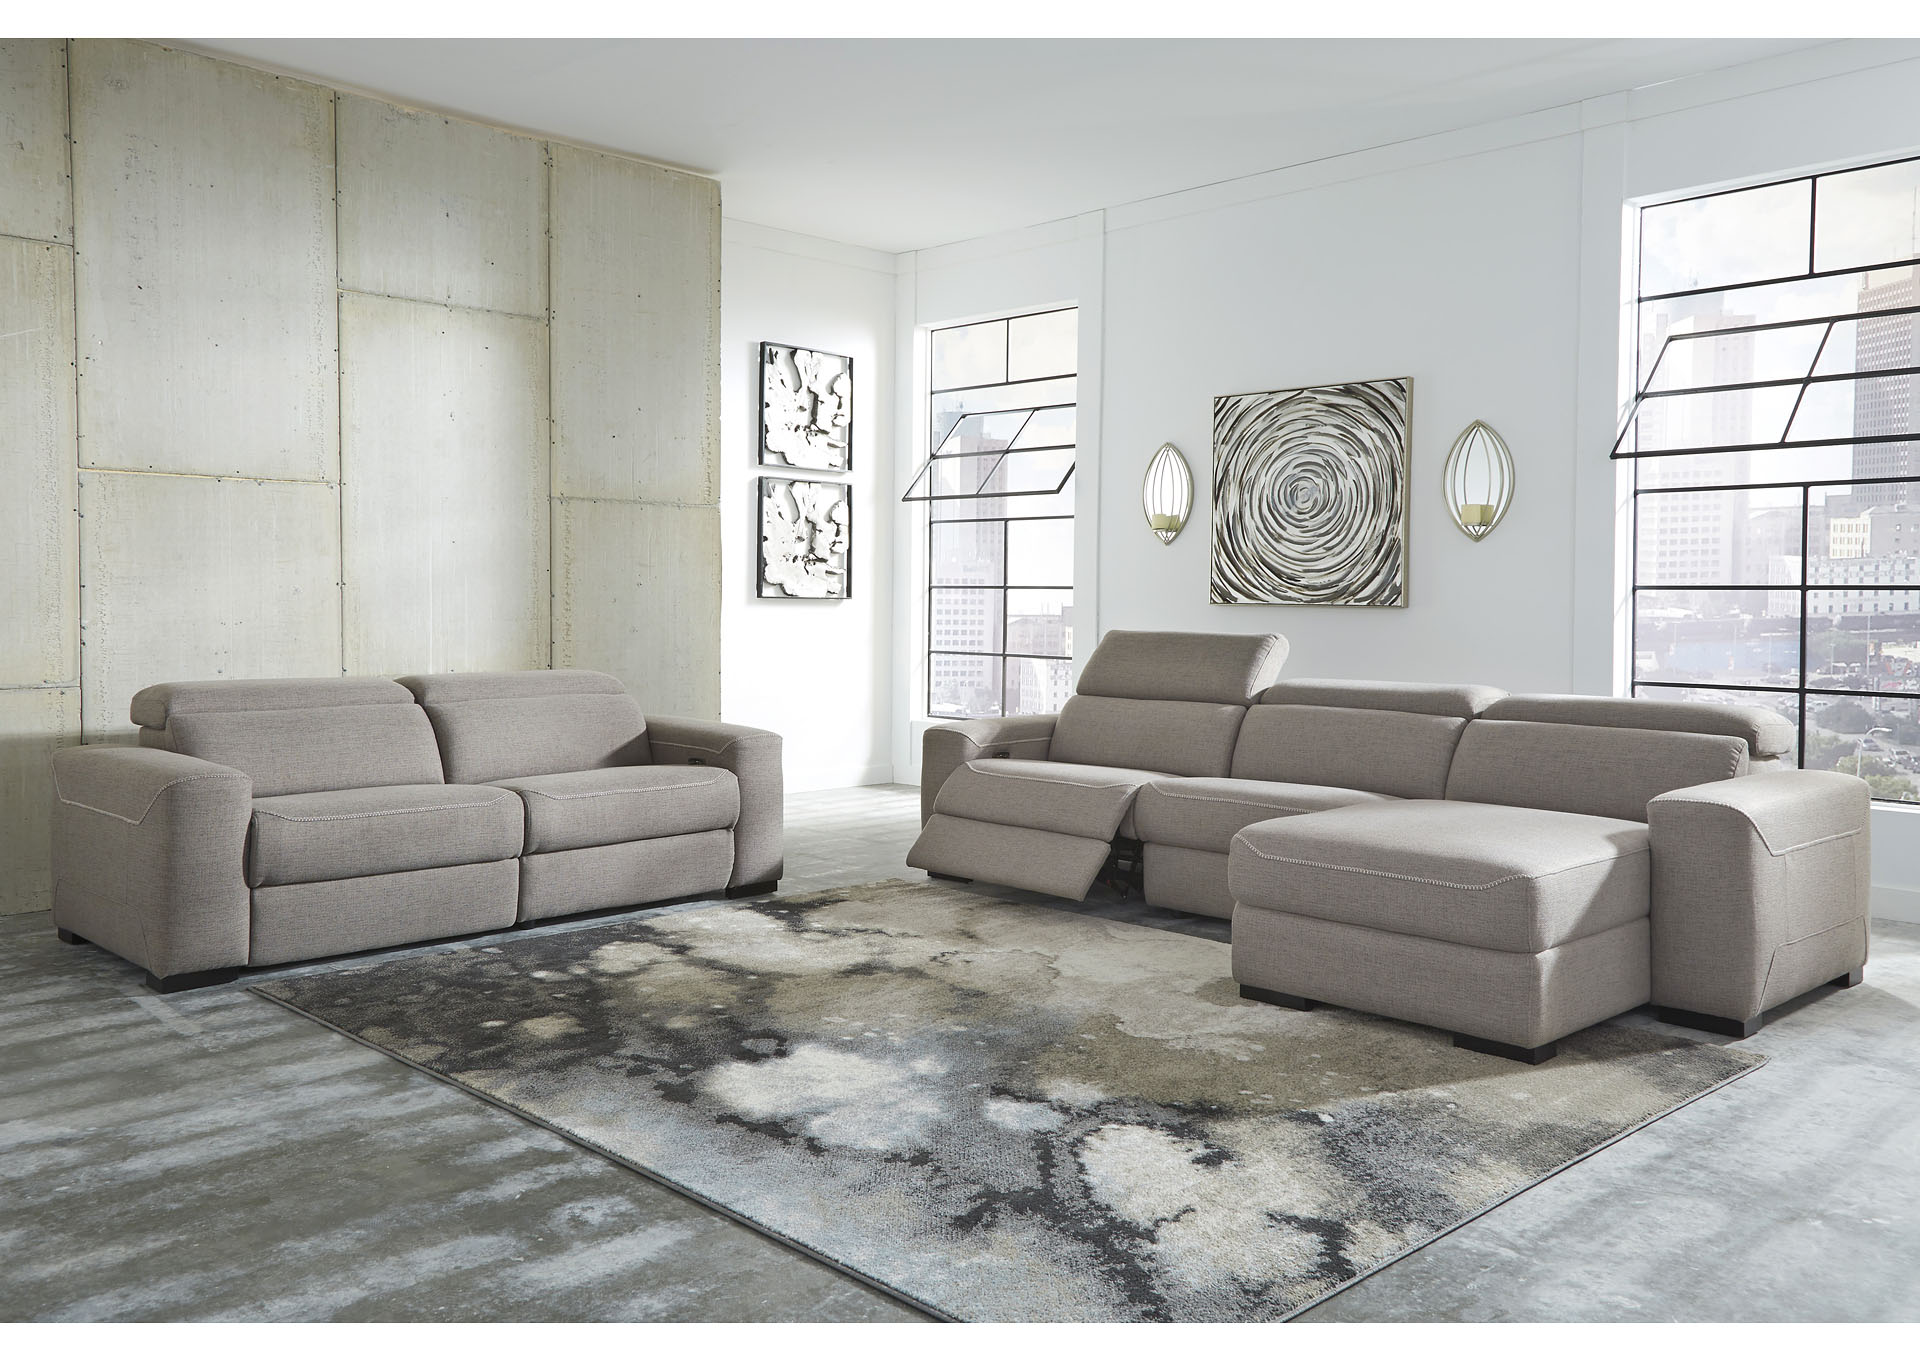 Mabton Gray 2 Piece Sectional,Signature Design By Ashley